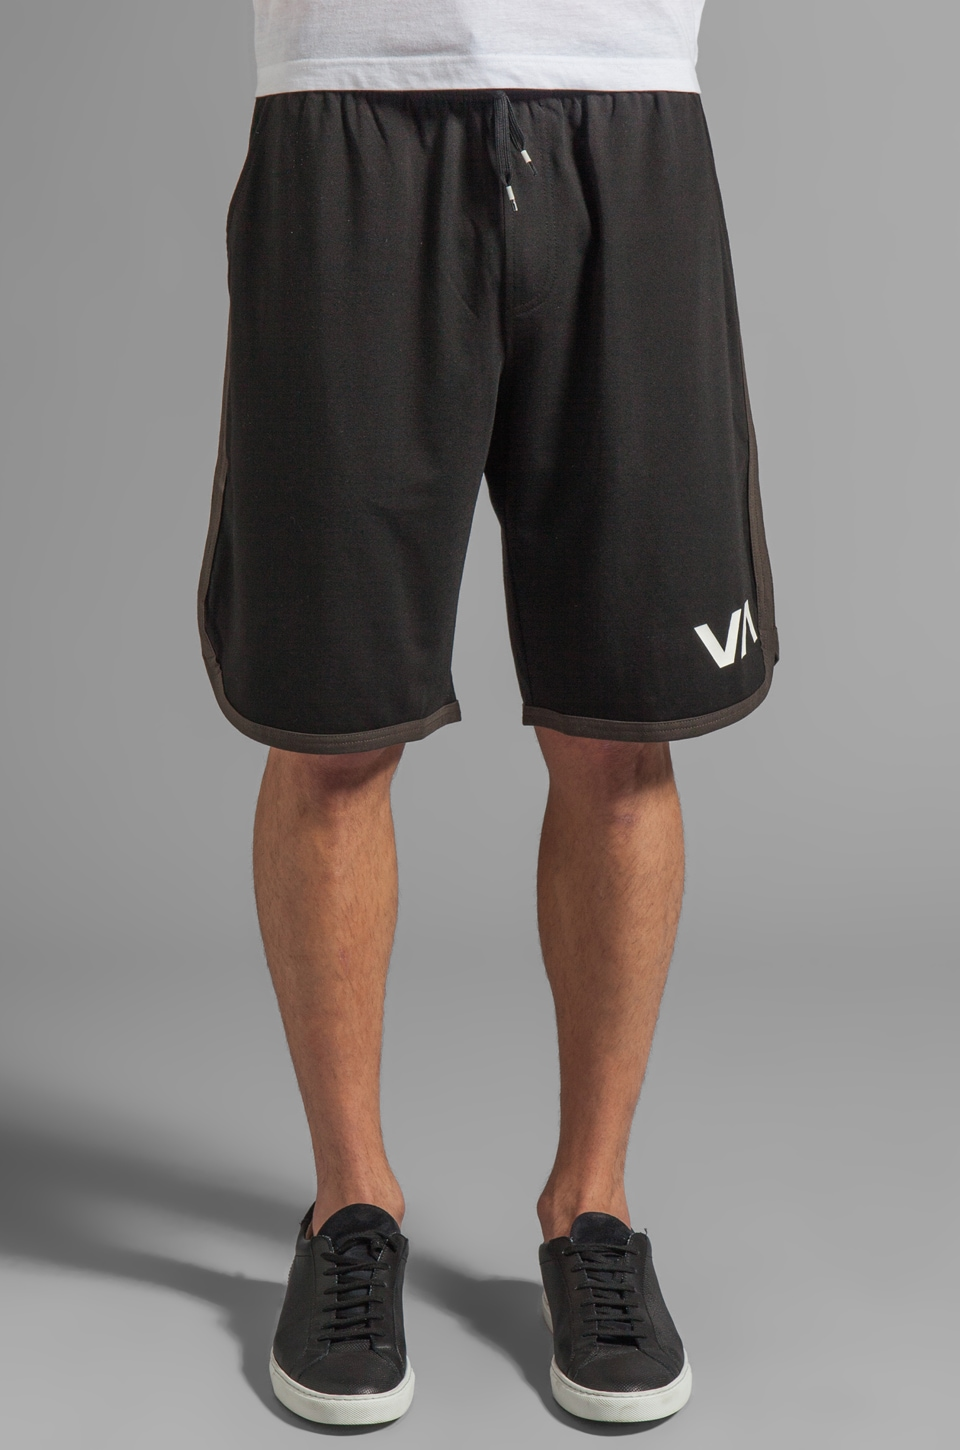 RVCA VA Sport Short in Black